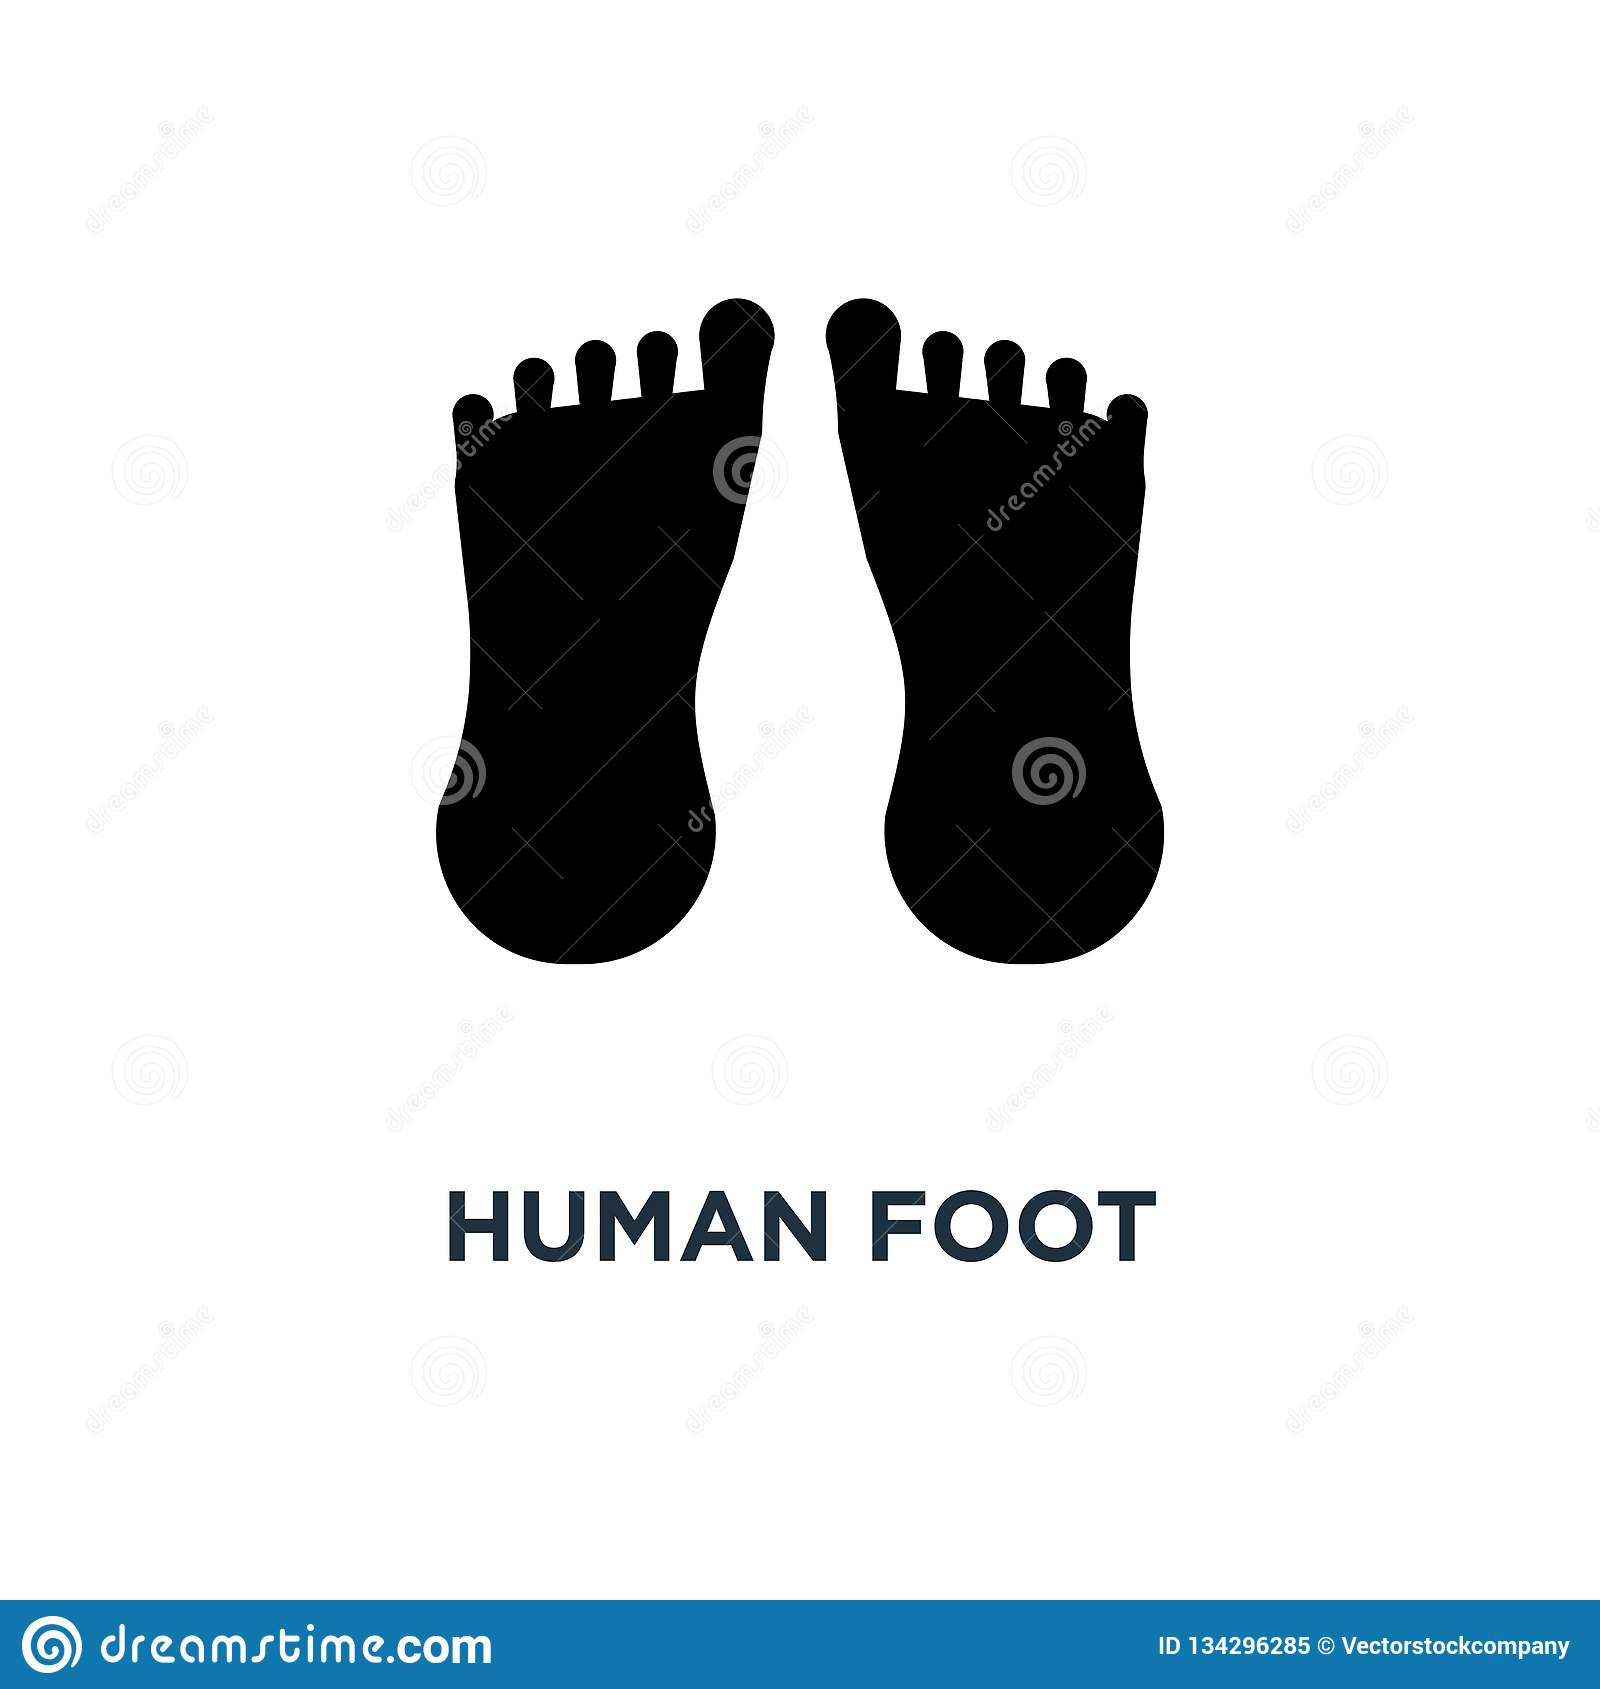 Human foot icon. Simple element illustration. Human foot concept